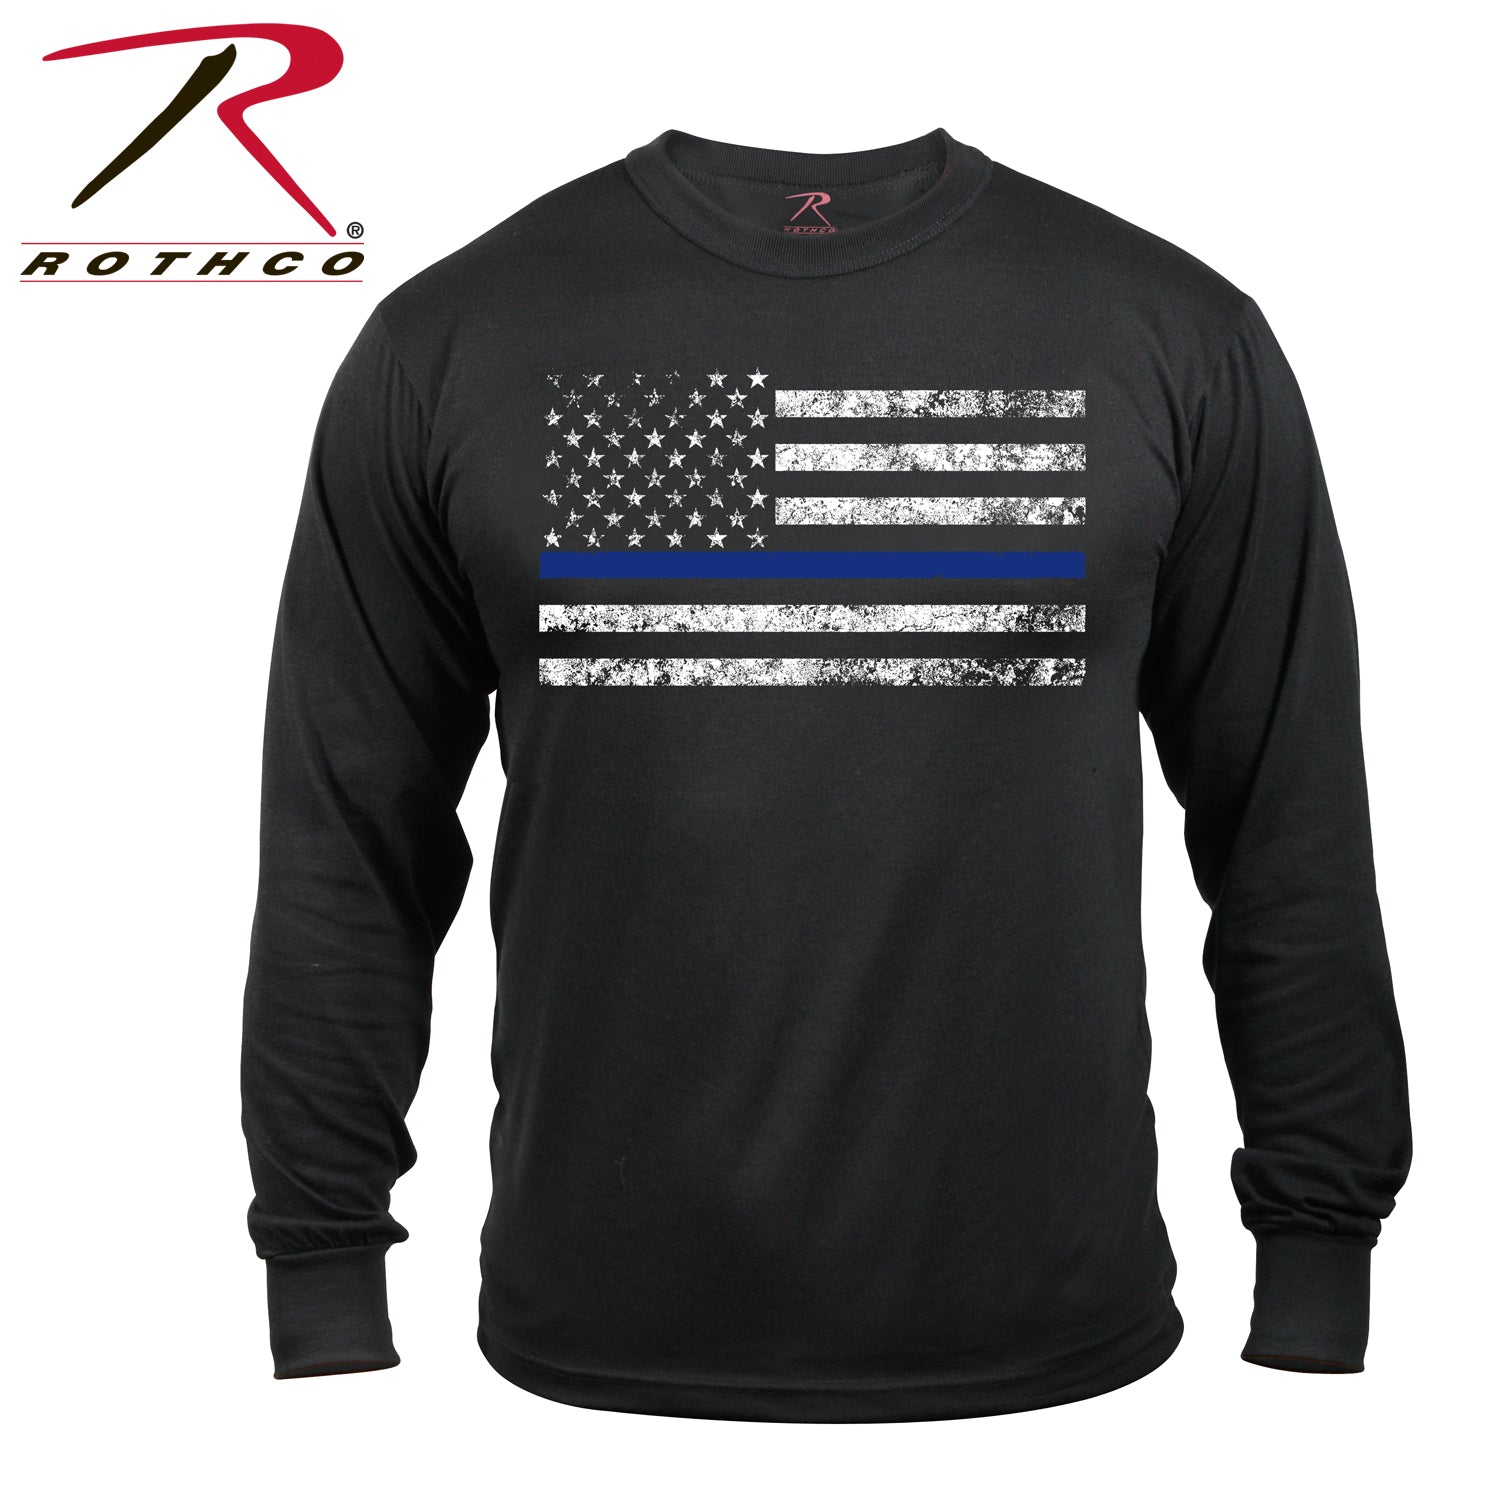 Rothco Thin Blue Line T-Shirt Long Sleeve